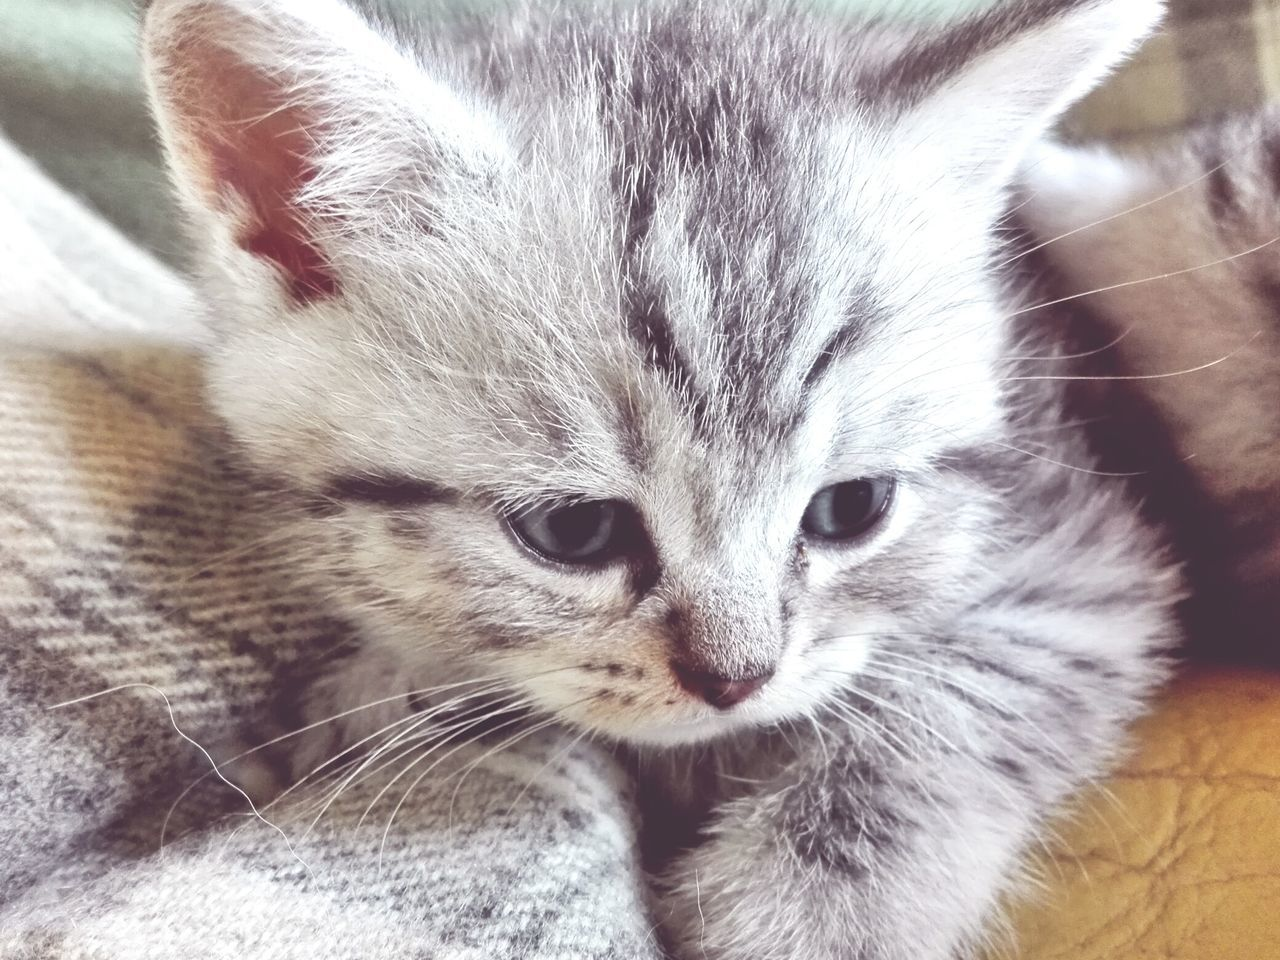 Lovely Cat Eyem EyeEm EyeEm Nature Lover Animals Sweet♡ Puppy Power Cats 🐱 Kitten Eyem Gallery Cat♡ Cat Puppy Kitten 🐱 Kitten AdorableKittensofinstagram Kittenlife Kitten Love Eyemcaptured EyeEm Gallery Eyeem Photography Showcase July